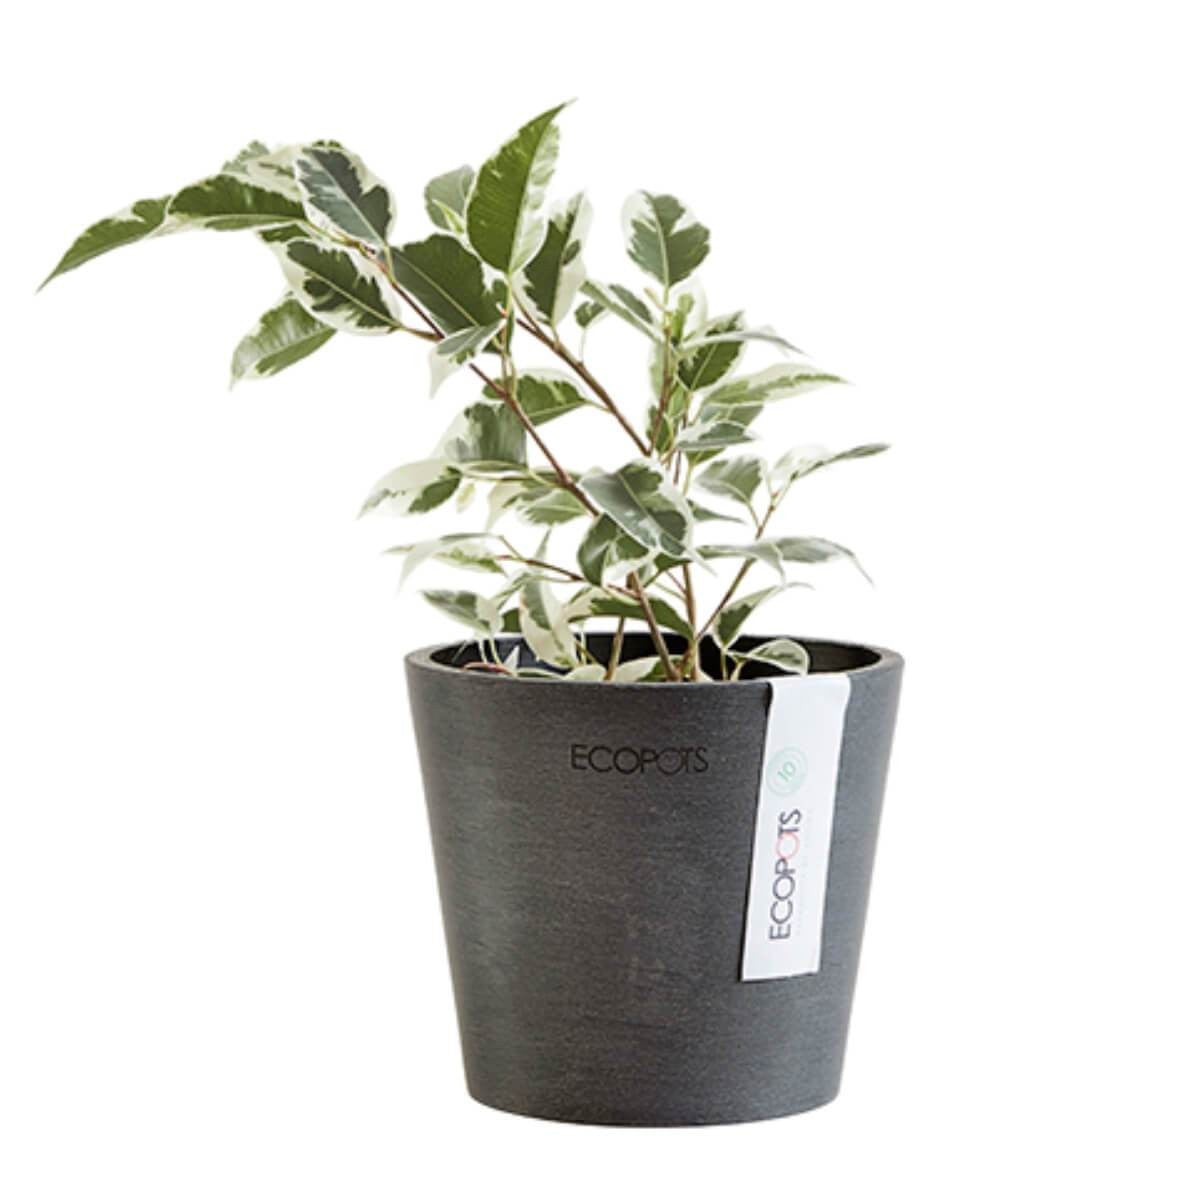 Ecopots Amsterdam pot 10.5 cm black with plant